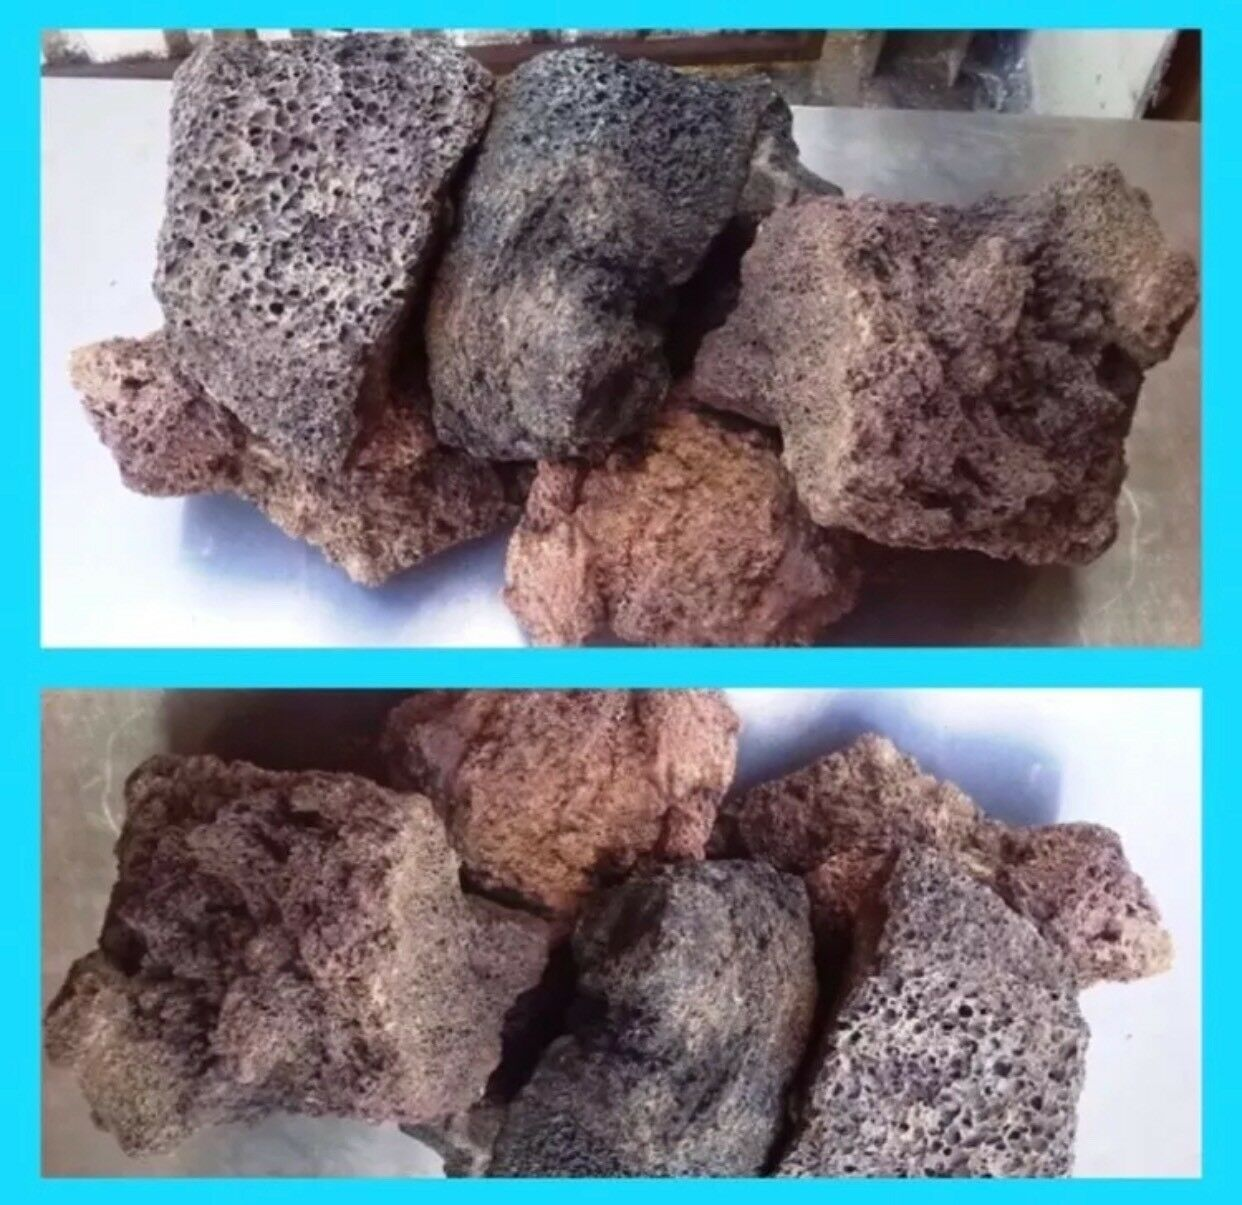 25 Kg Natural Lava Rock Ideal For Fish Tank Aquarium